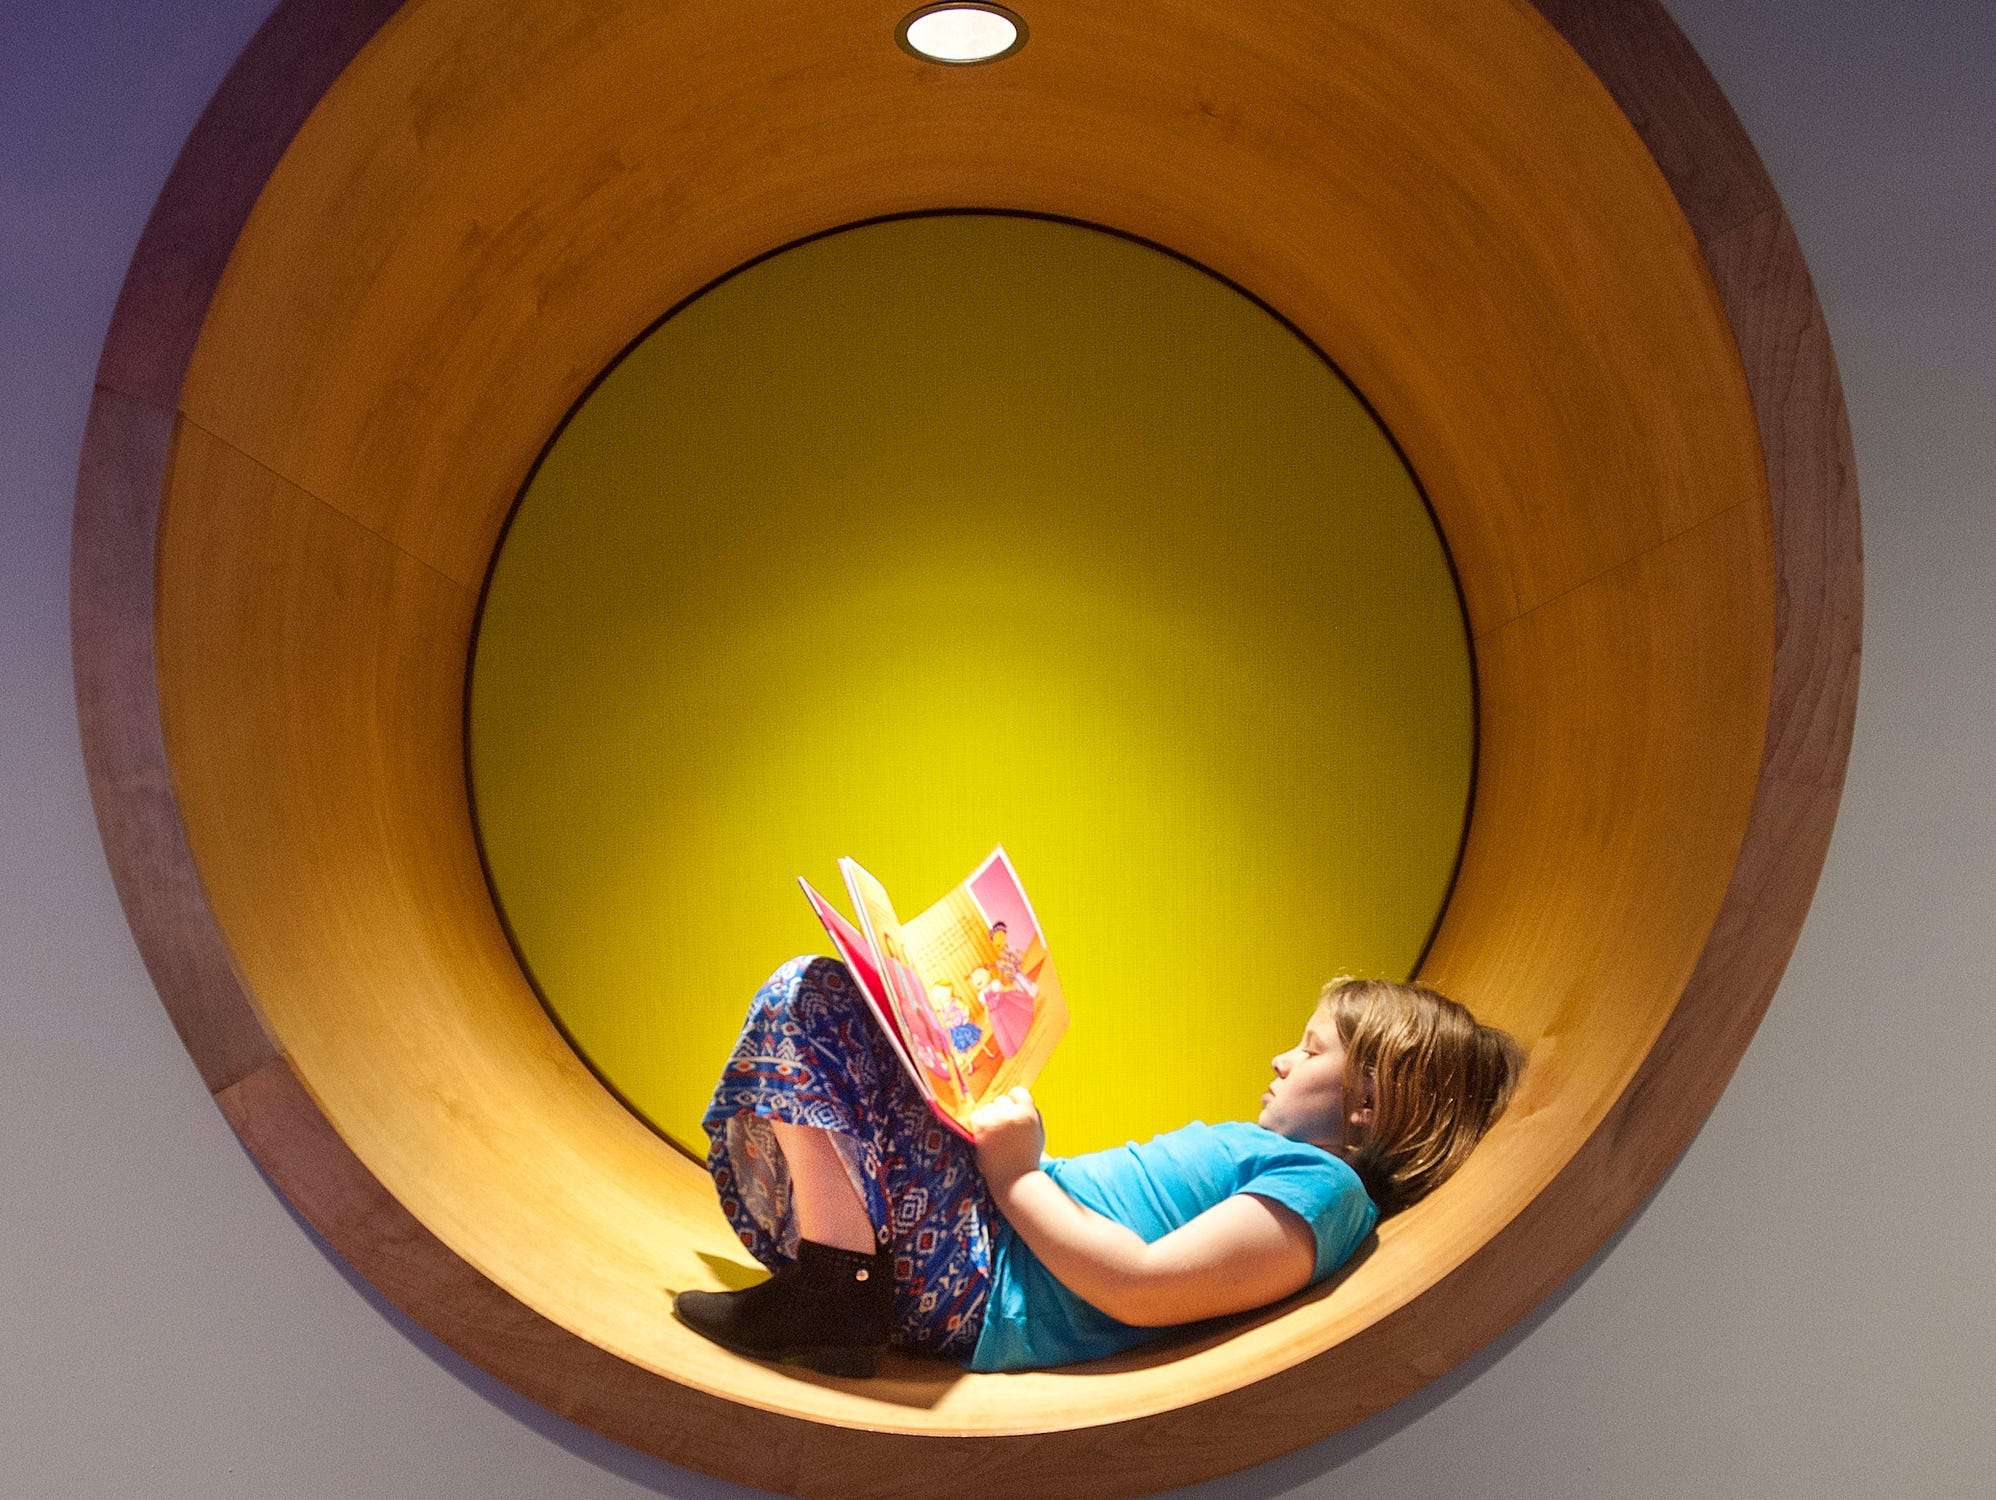 In the new teen area of the library, Scarlett Brainard, age 8,  of Crescent Hill curls up with a book in the circular hollow built into a wall. May 9, 2019